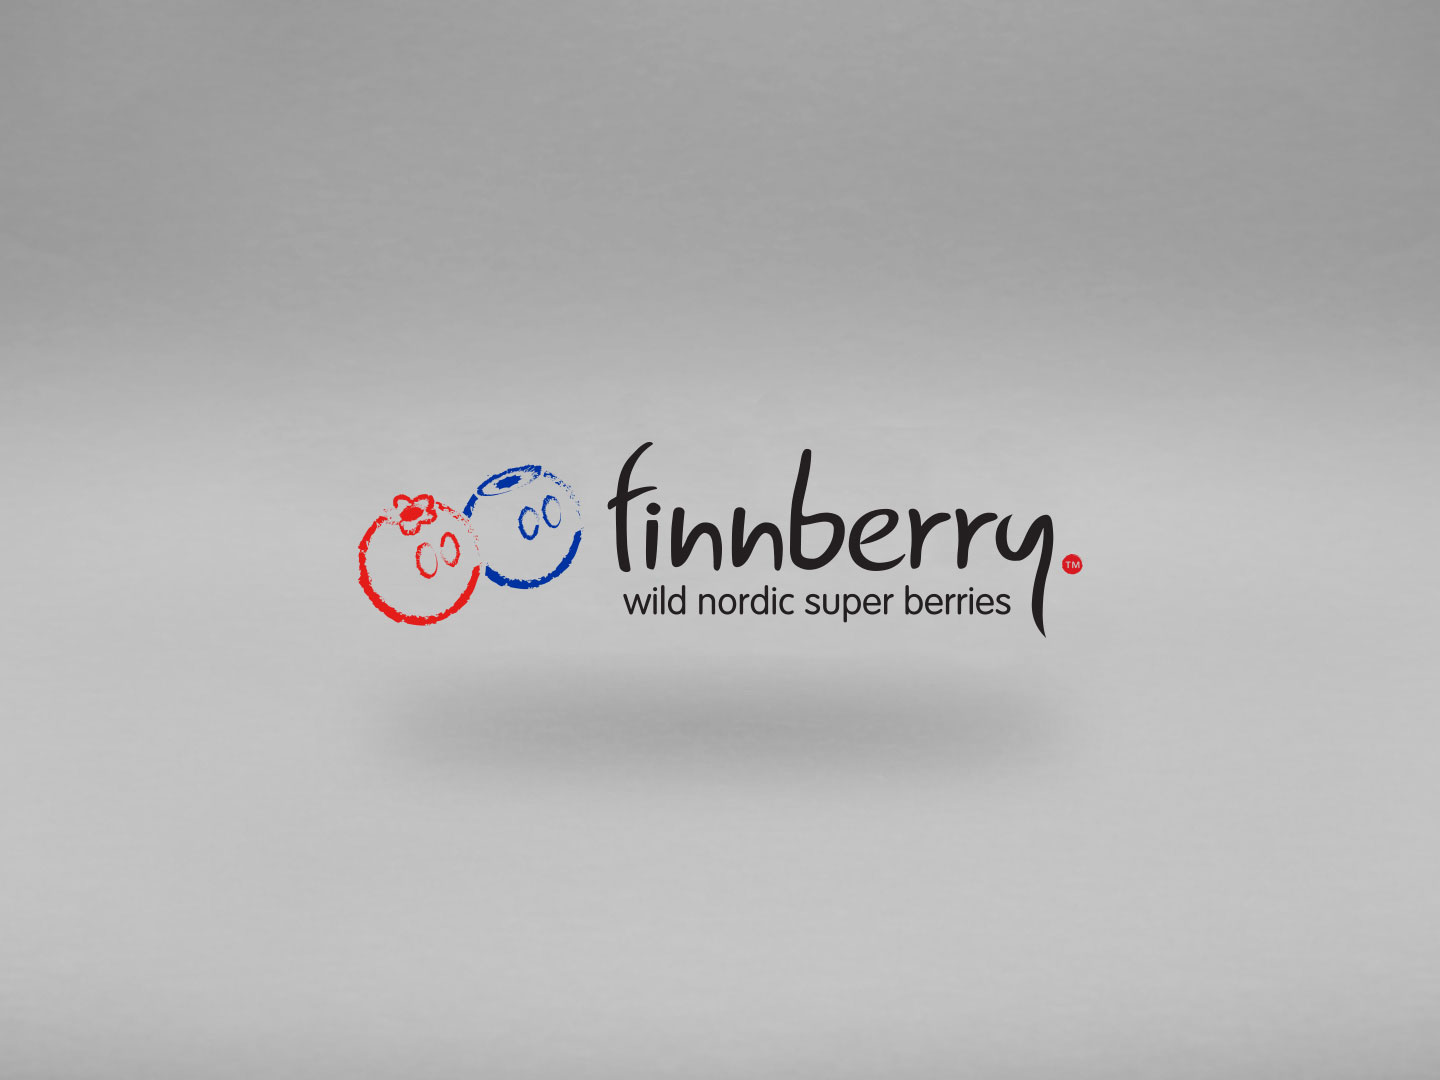 finnberry, nordic super berries, grafika, bakewell, derbyshire, branding, logo, stationery, graphic design, agency, peak district, sheffield, chesterfield, manchester, derby